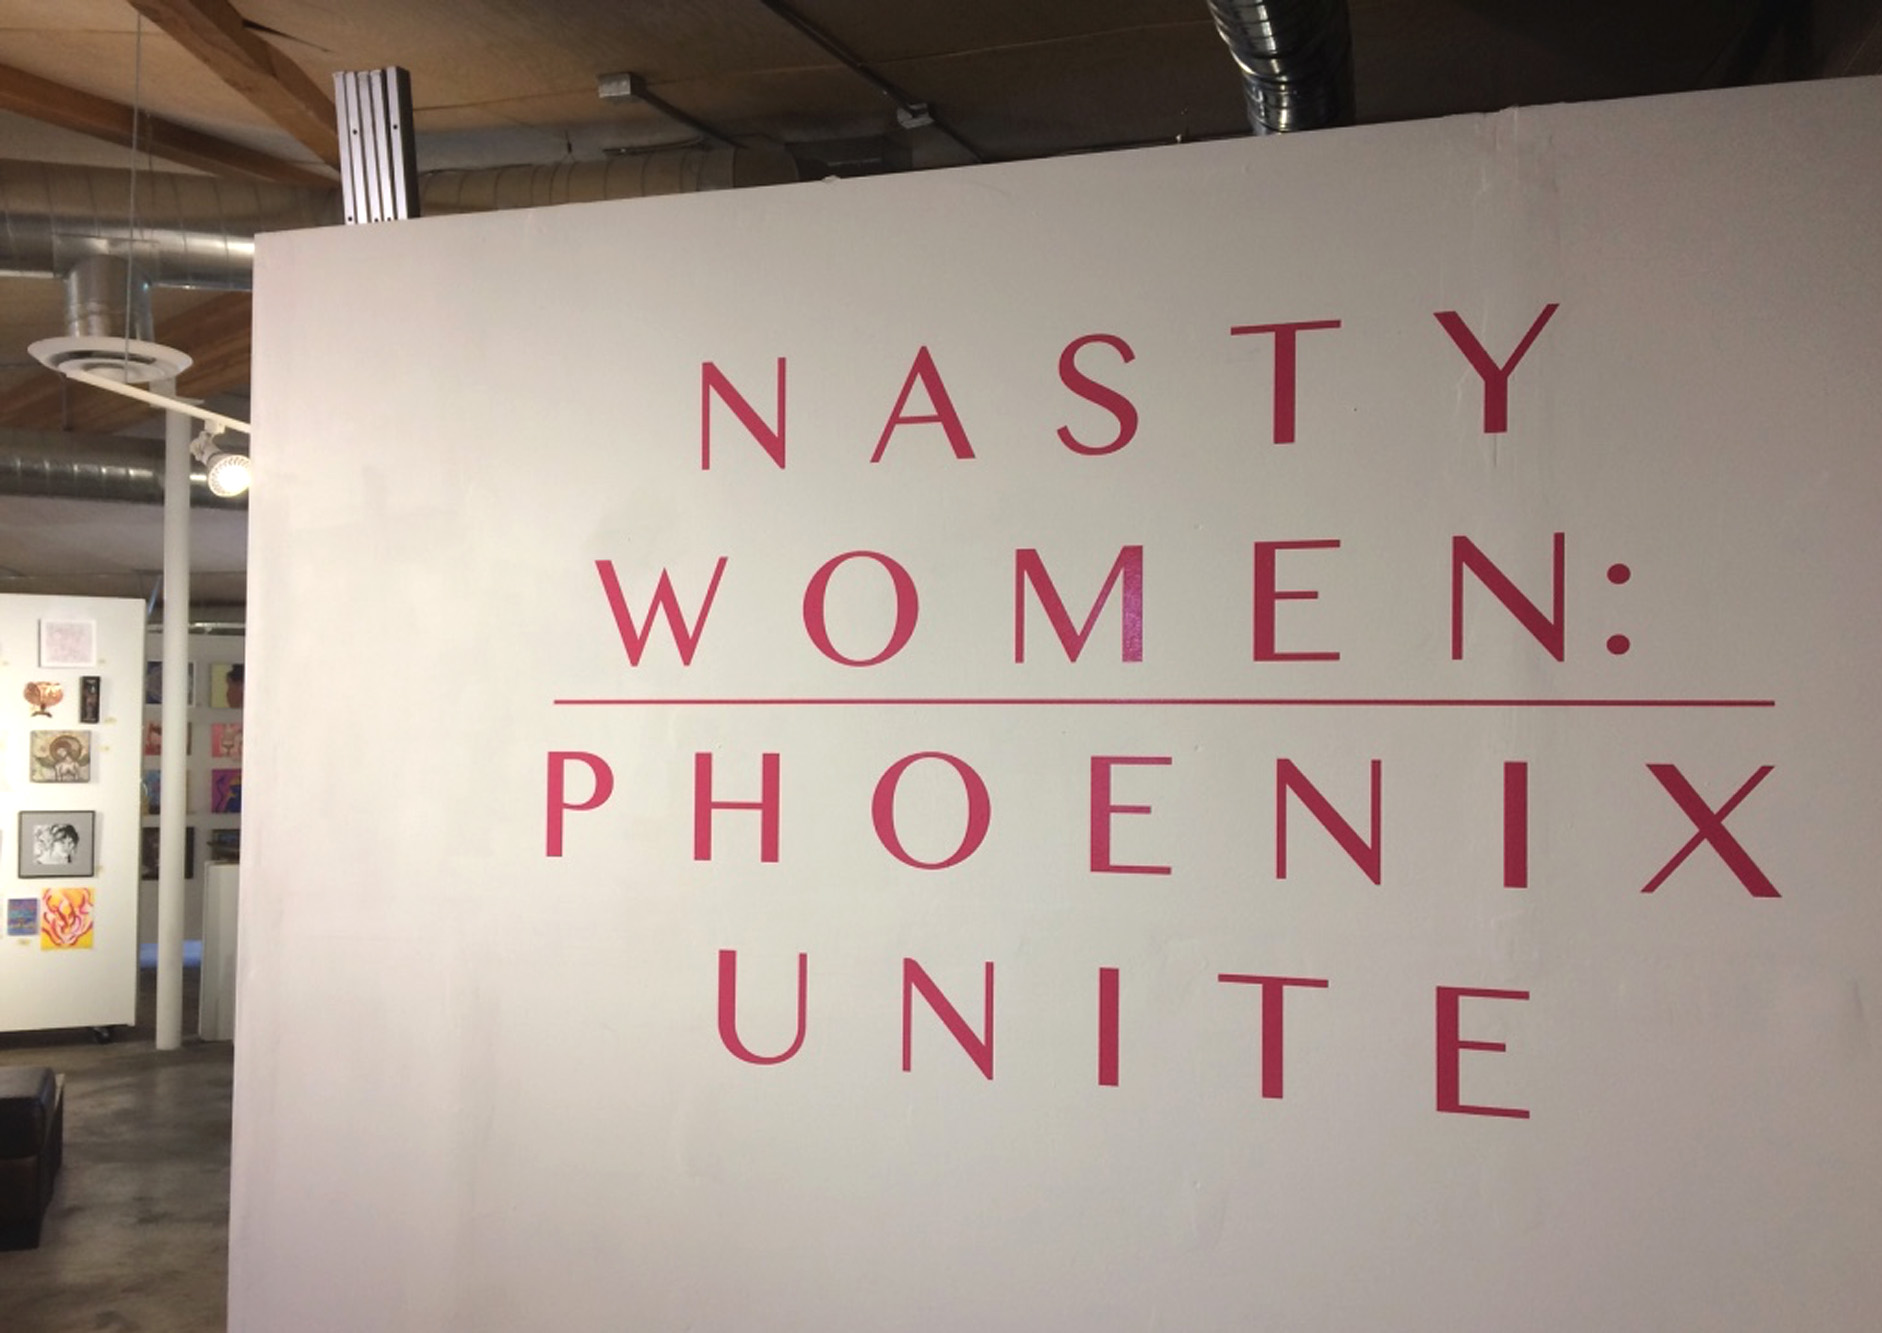 Nasty Women: Phoenix Unite   Co-Organizer of an exhibition & fundraiser for Planned Parenthood AZ